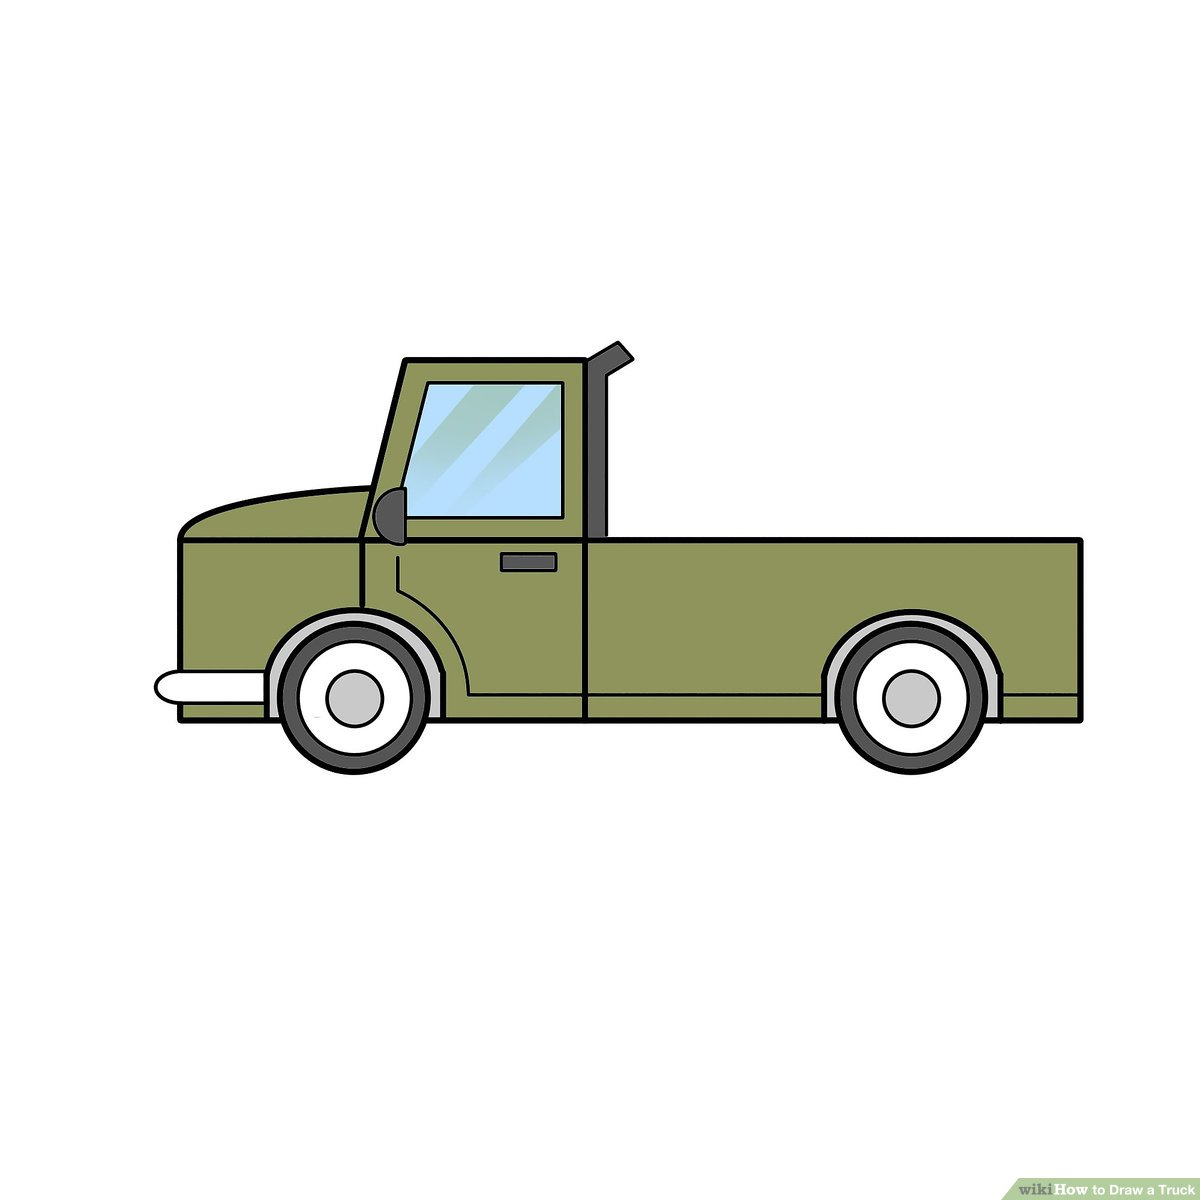 2 Easy Ways to Draw a Truck (with Pictures).